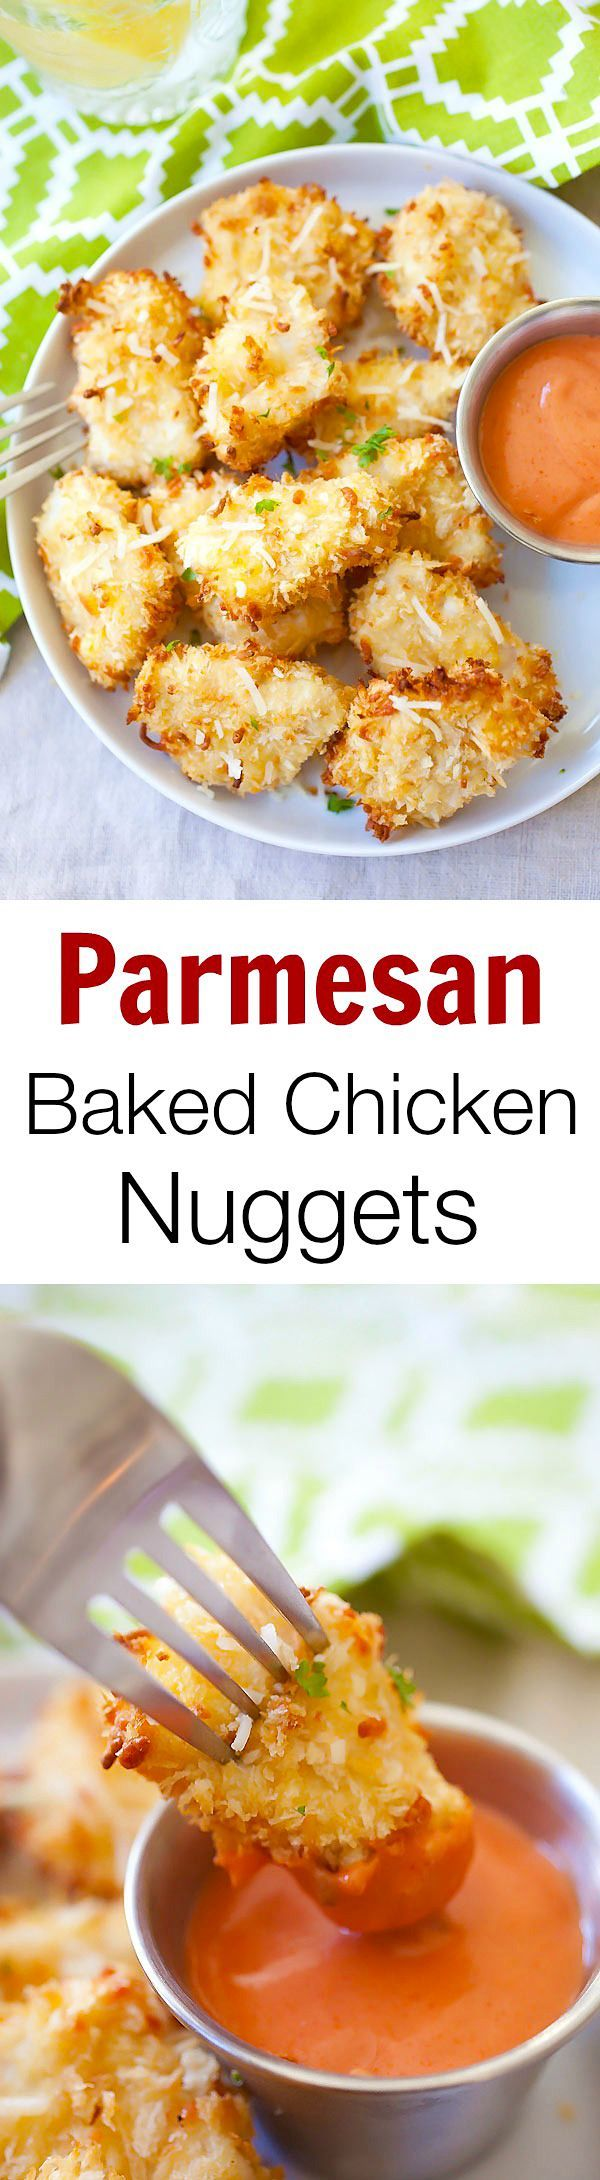 Parmesan Baked Chicken Nuggets Easy Chicken Nuggets With Real Chicken And No Deep Frying